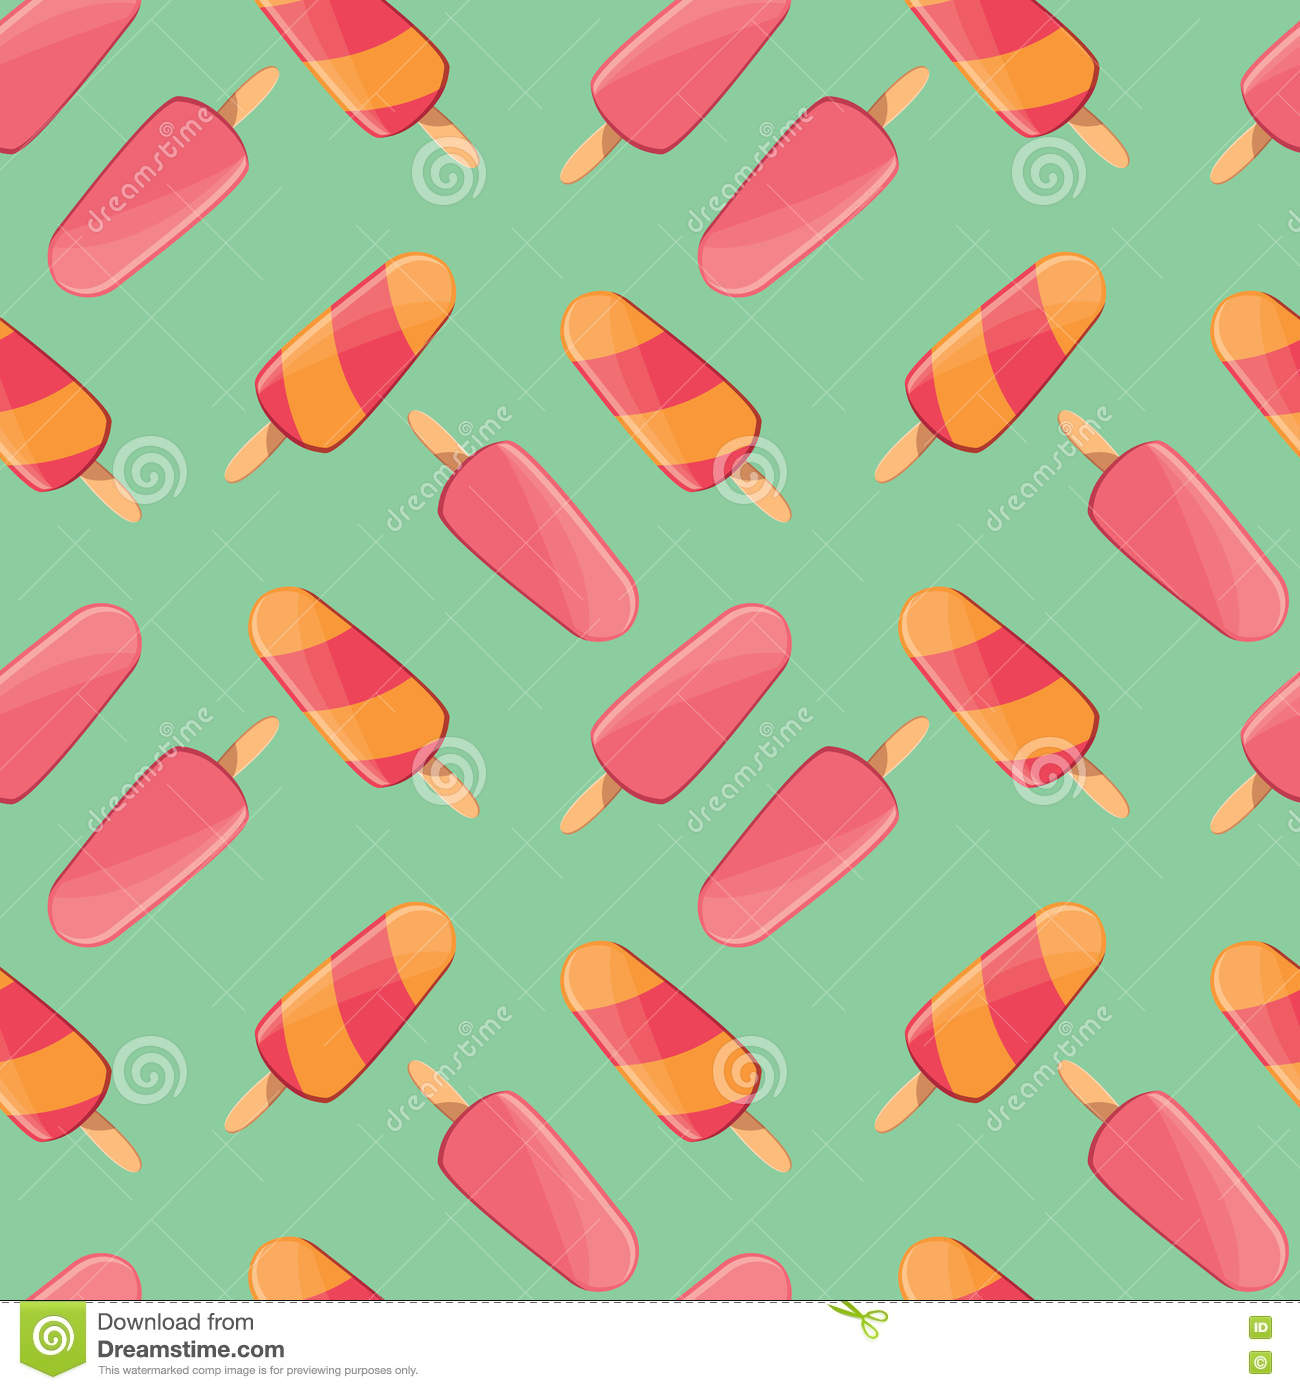 Fresh Ice Cream Stick In Summer Wallpaper Vector: Ice Cream Seamless Pattern, Colorful Summer Background